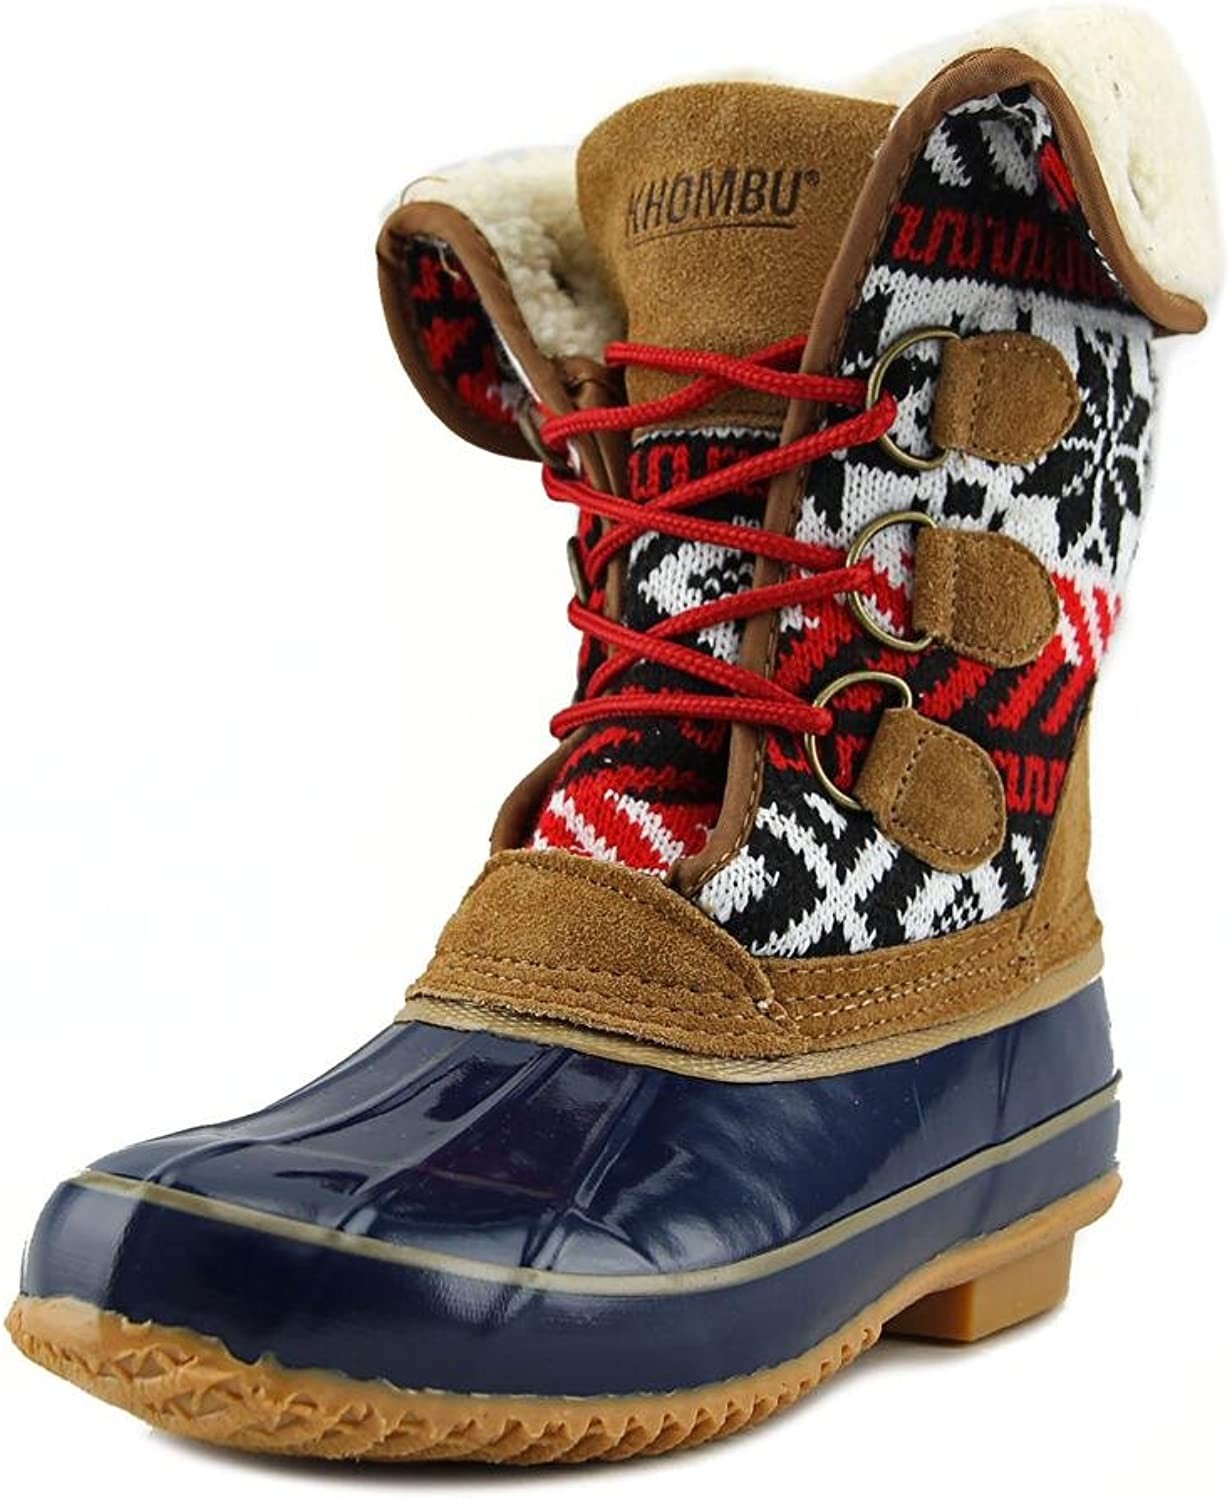 Khombu Jenna Fleece Lined Mid Calf Winter Boots, Navy Tan